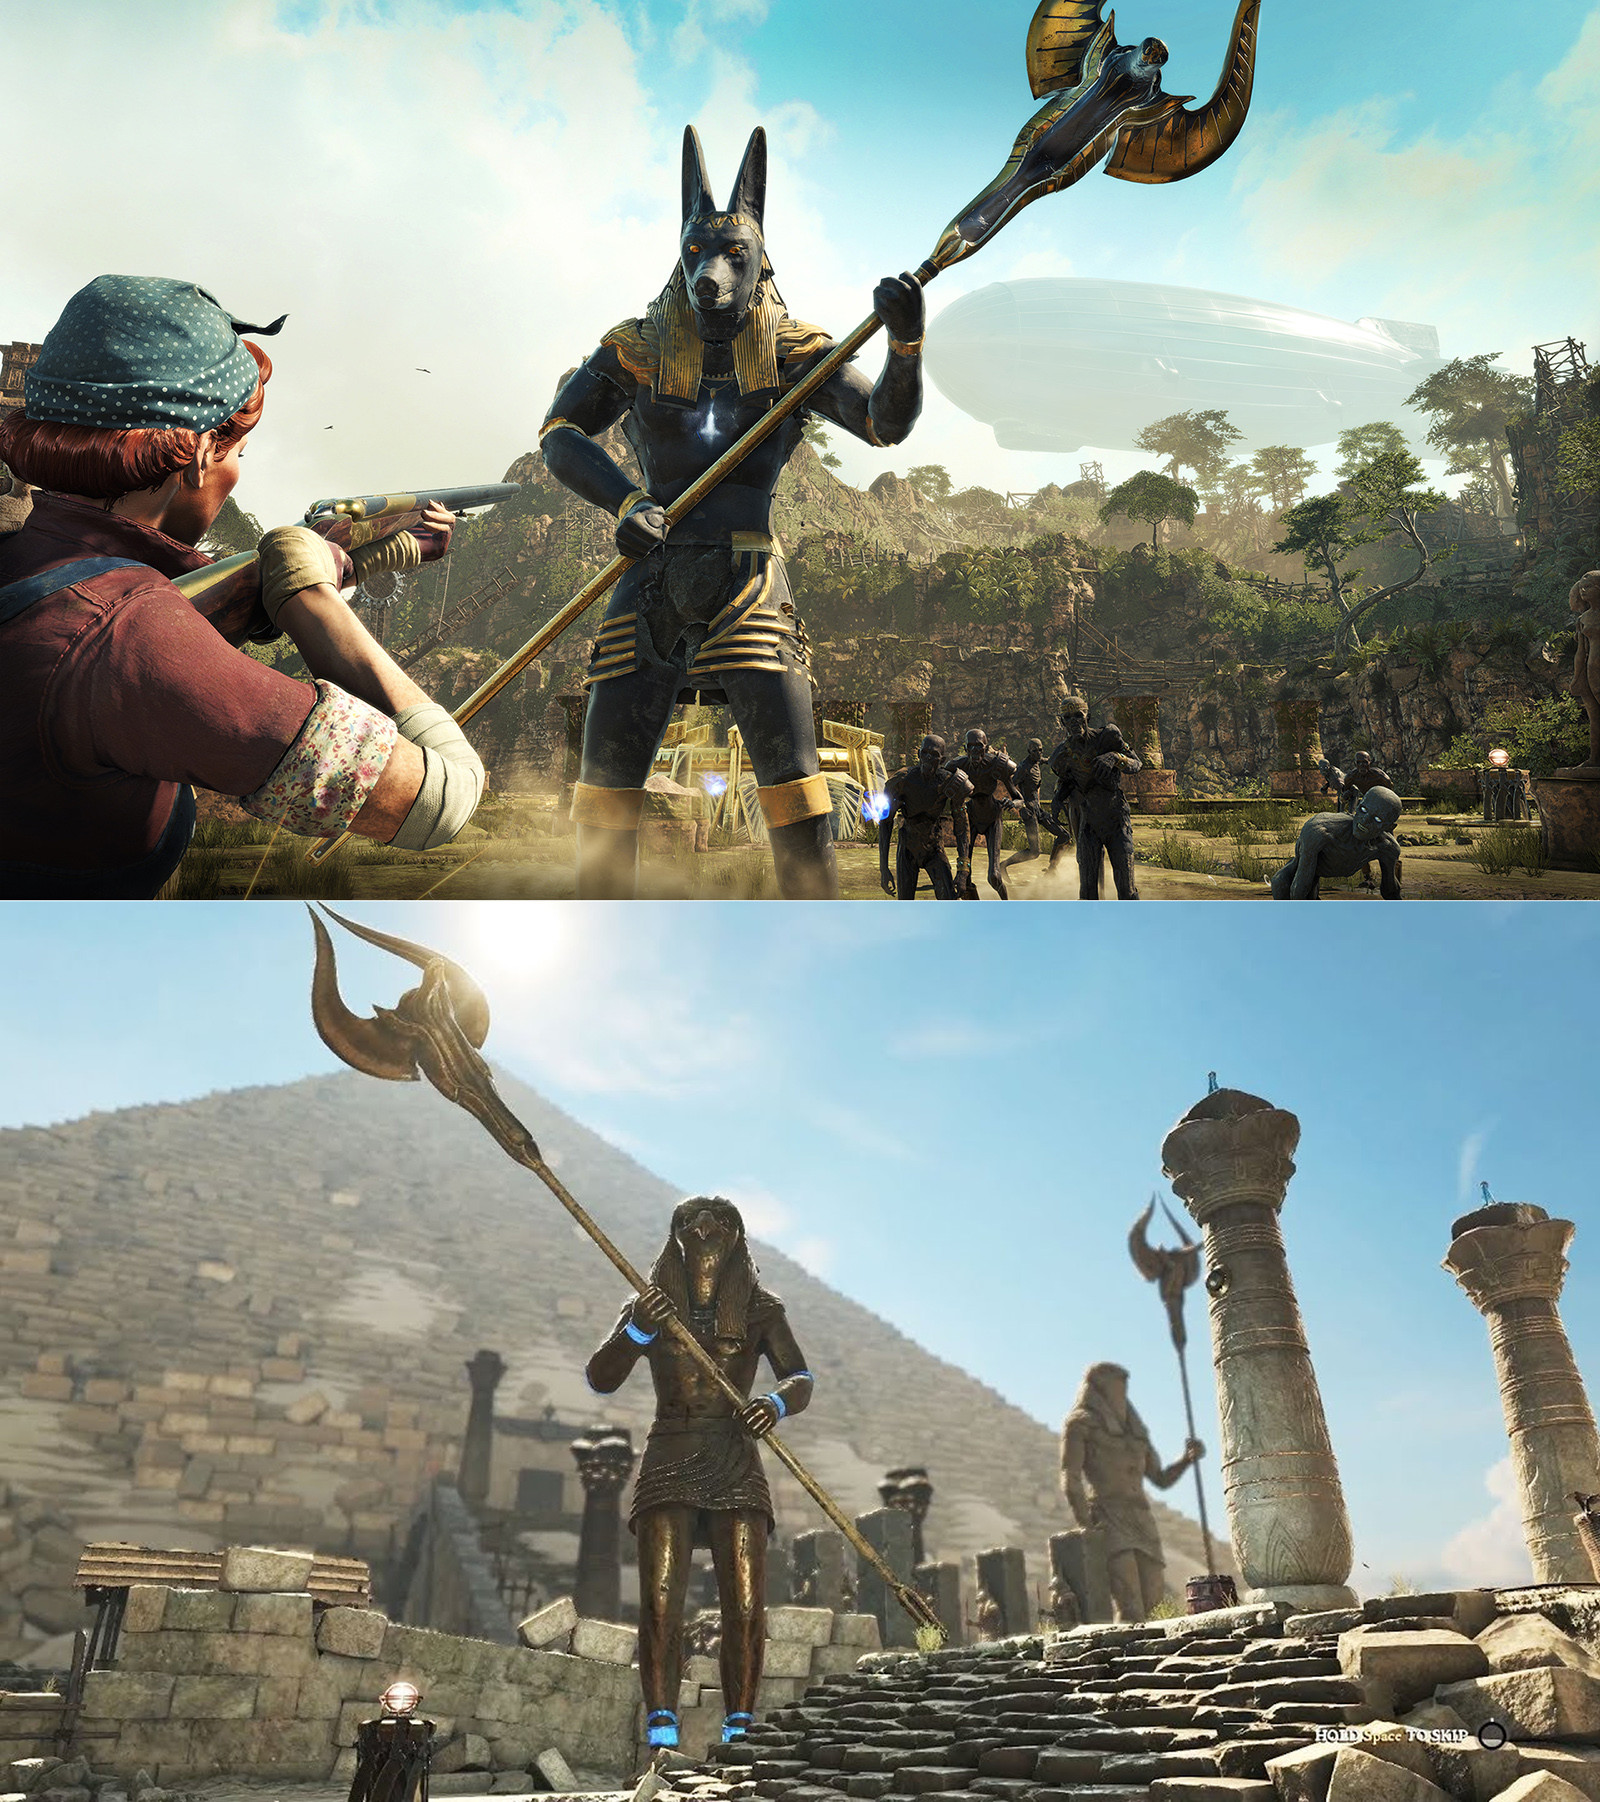 Statues went on to become bosses in the final game.